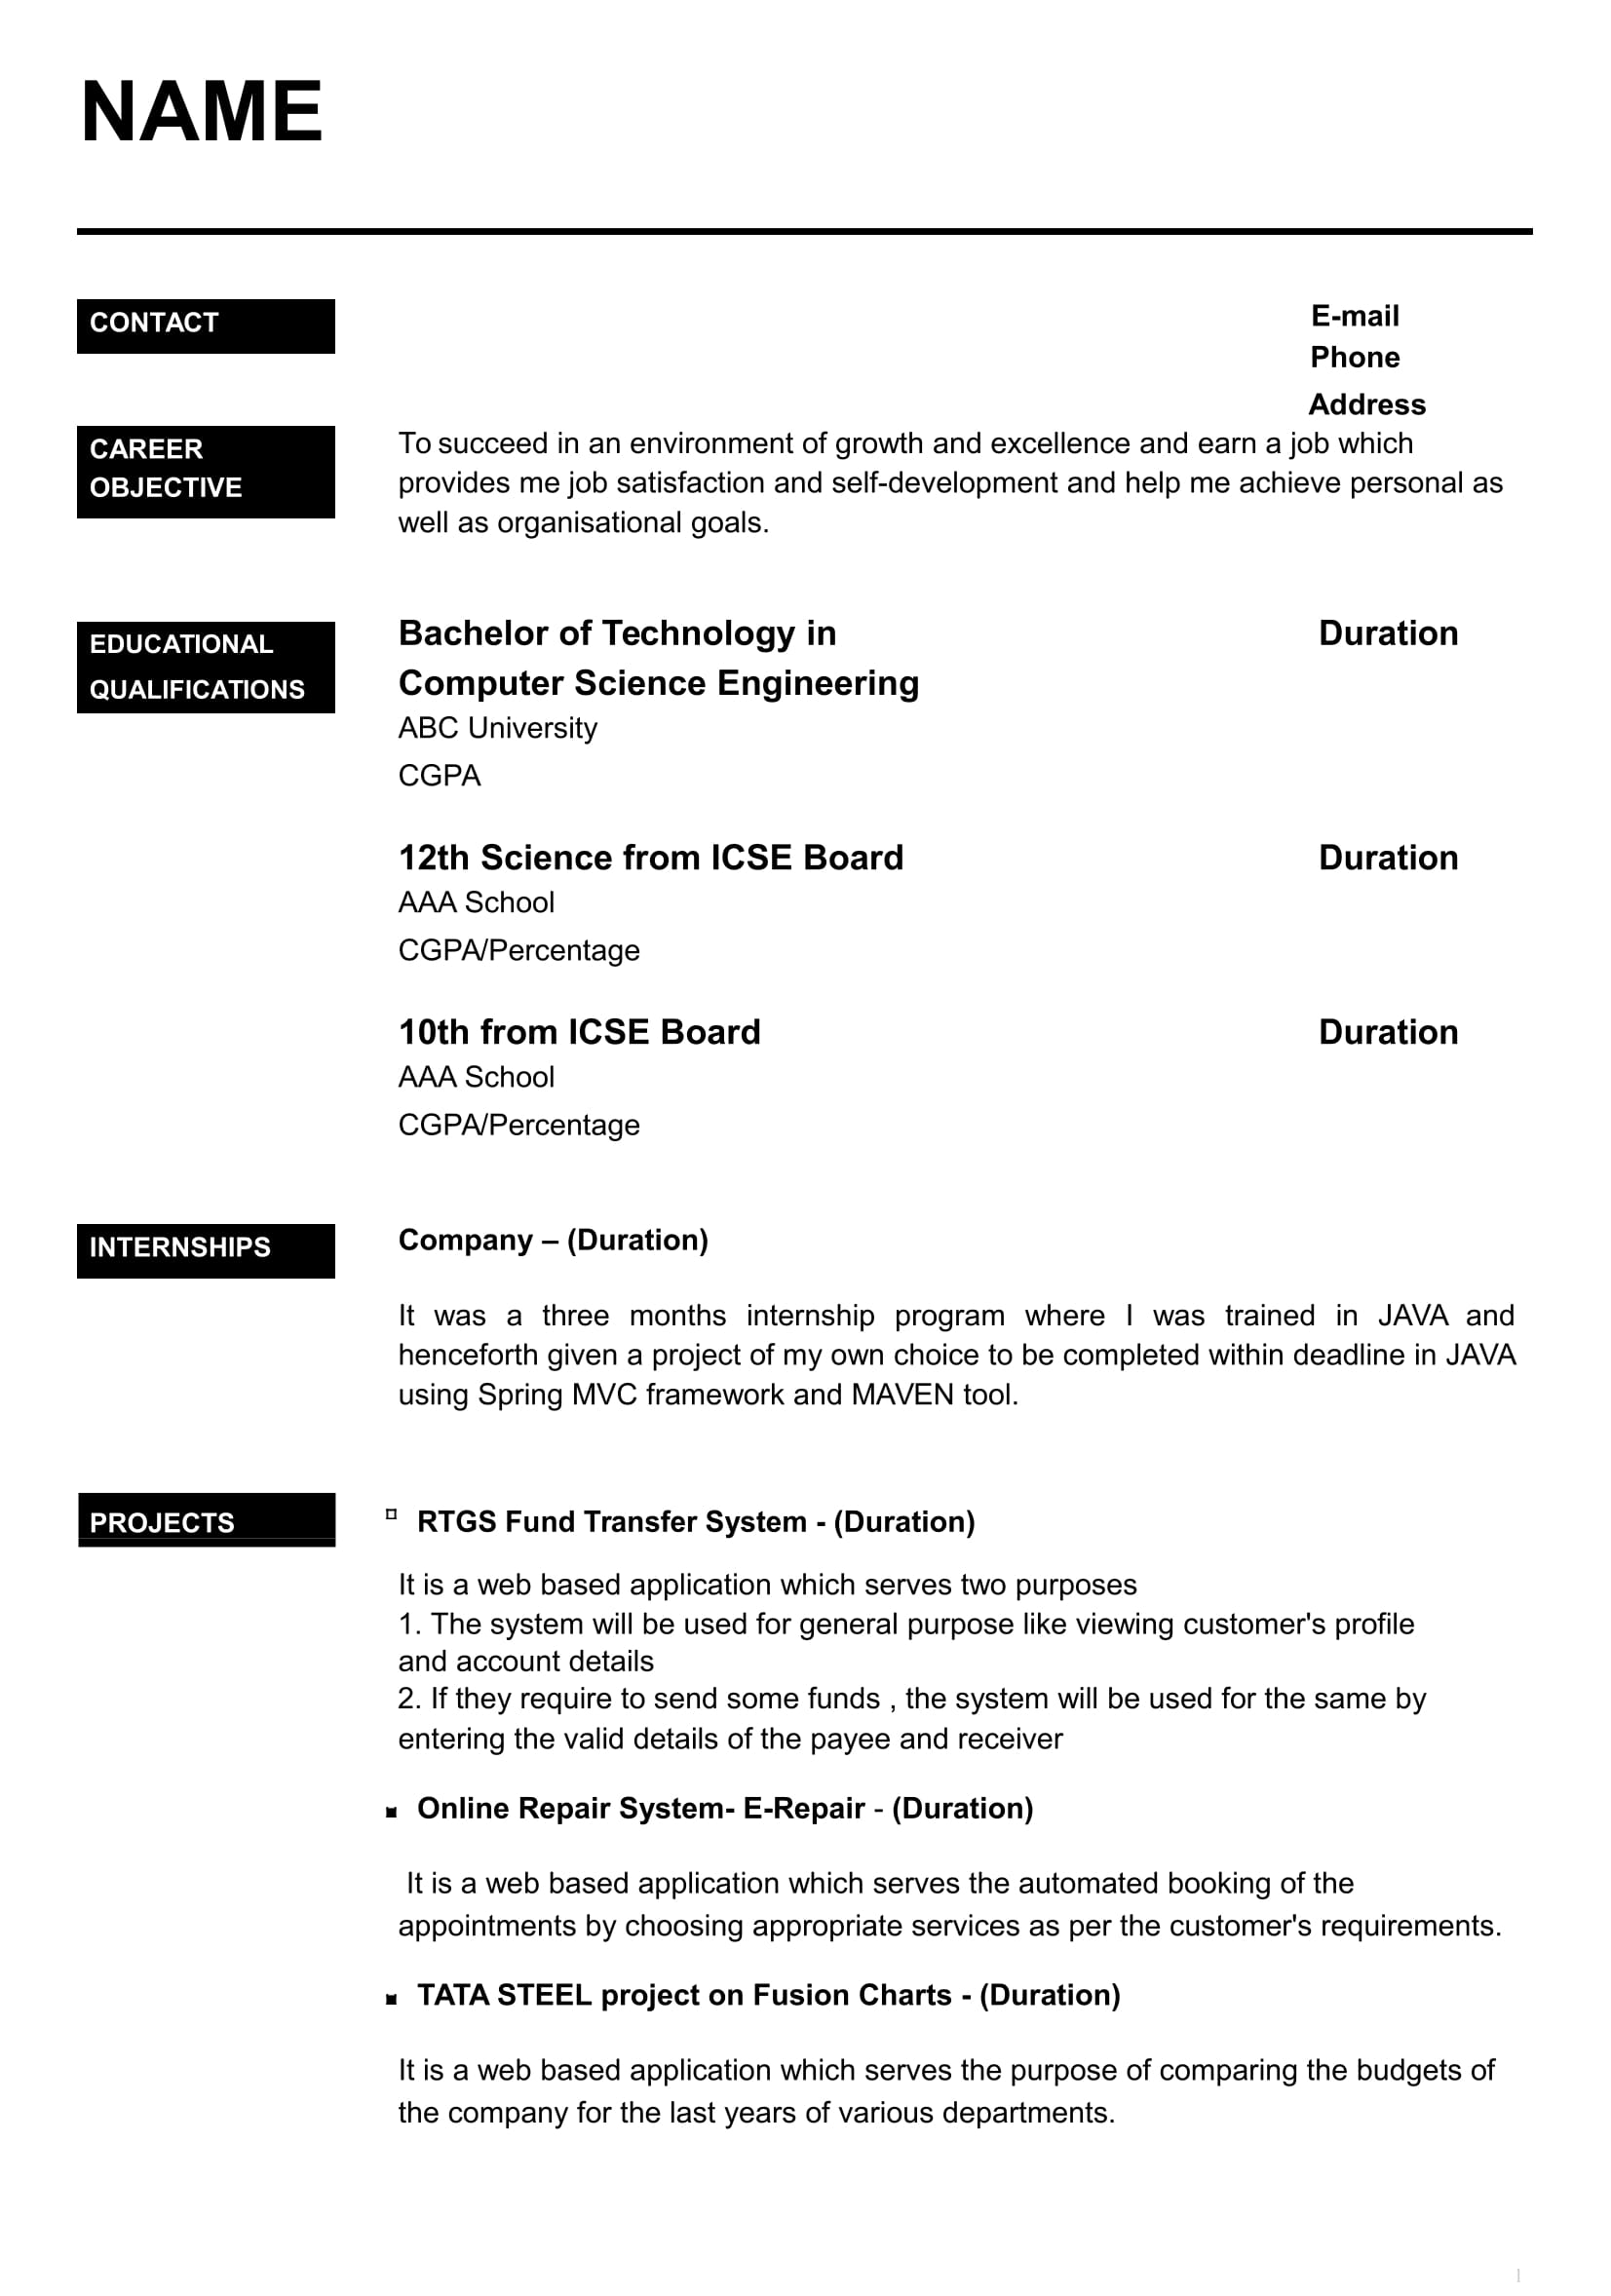 Resume Blank Format 32 Resume Templates For Freshers Download Free Word Format